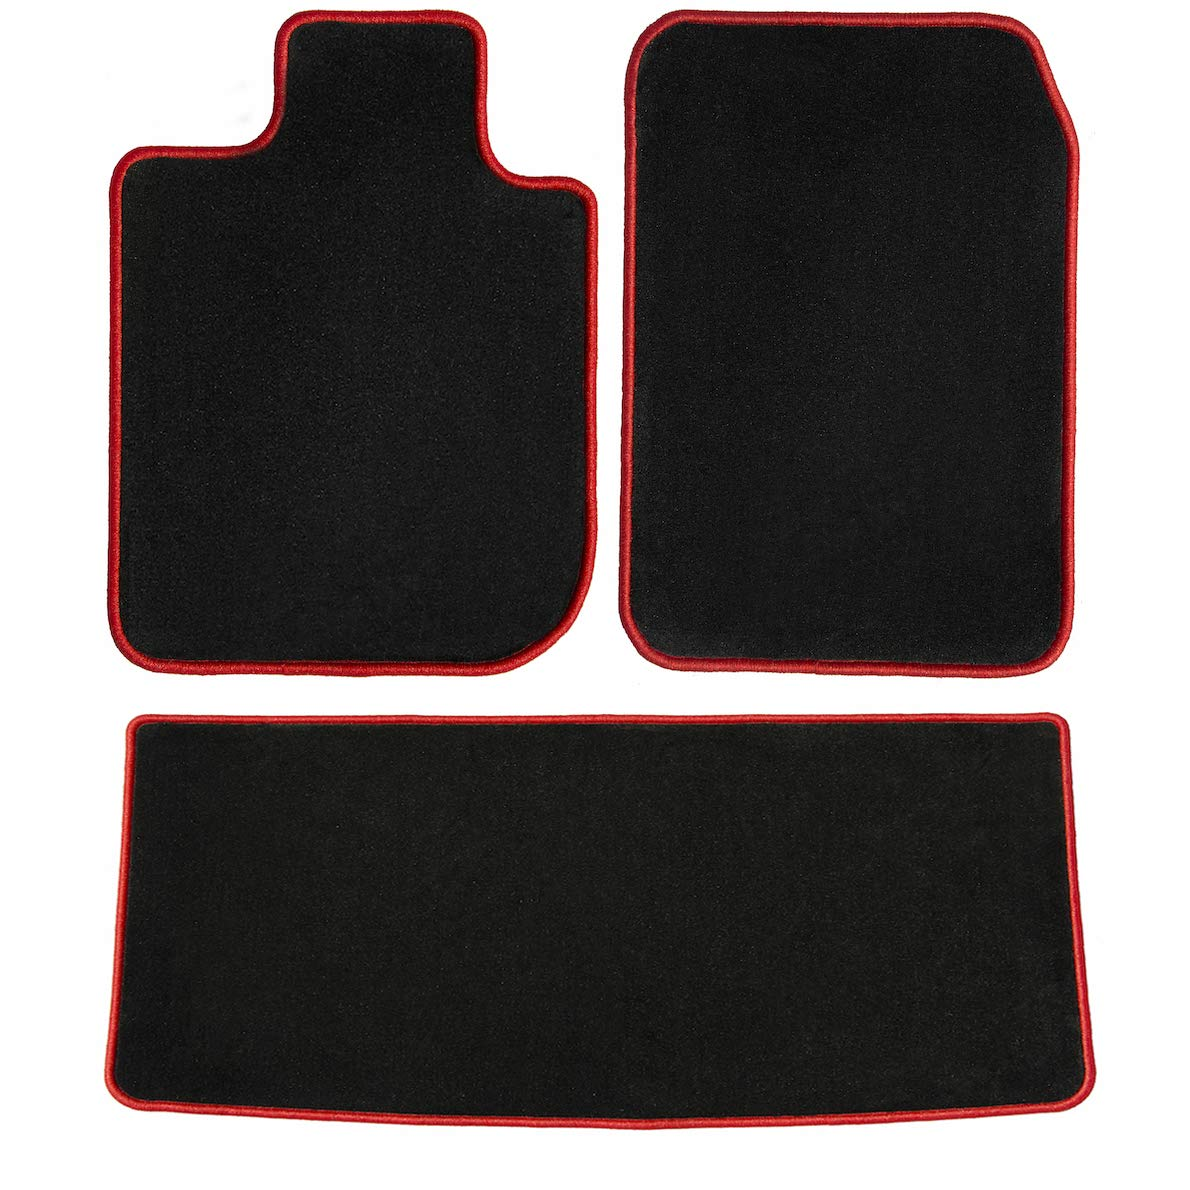 2008 2009 2010 GGBAILEY D4548A-S2B-BLK/_BR Custom Fit Car Mats for 2007 Passenger /& Rear Floor 2011 Honda CR-V Black with Red Edging Driver